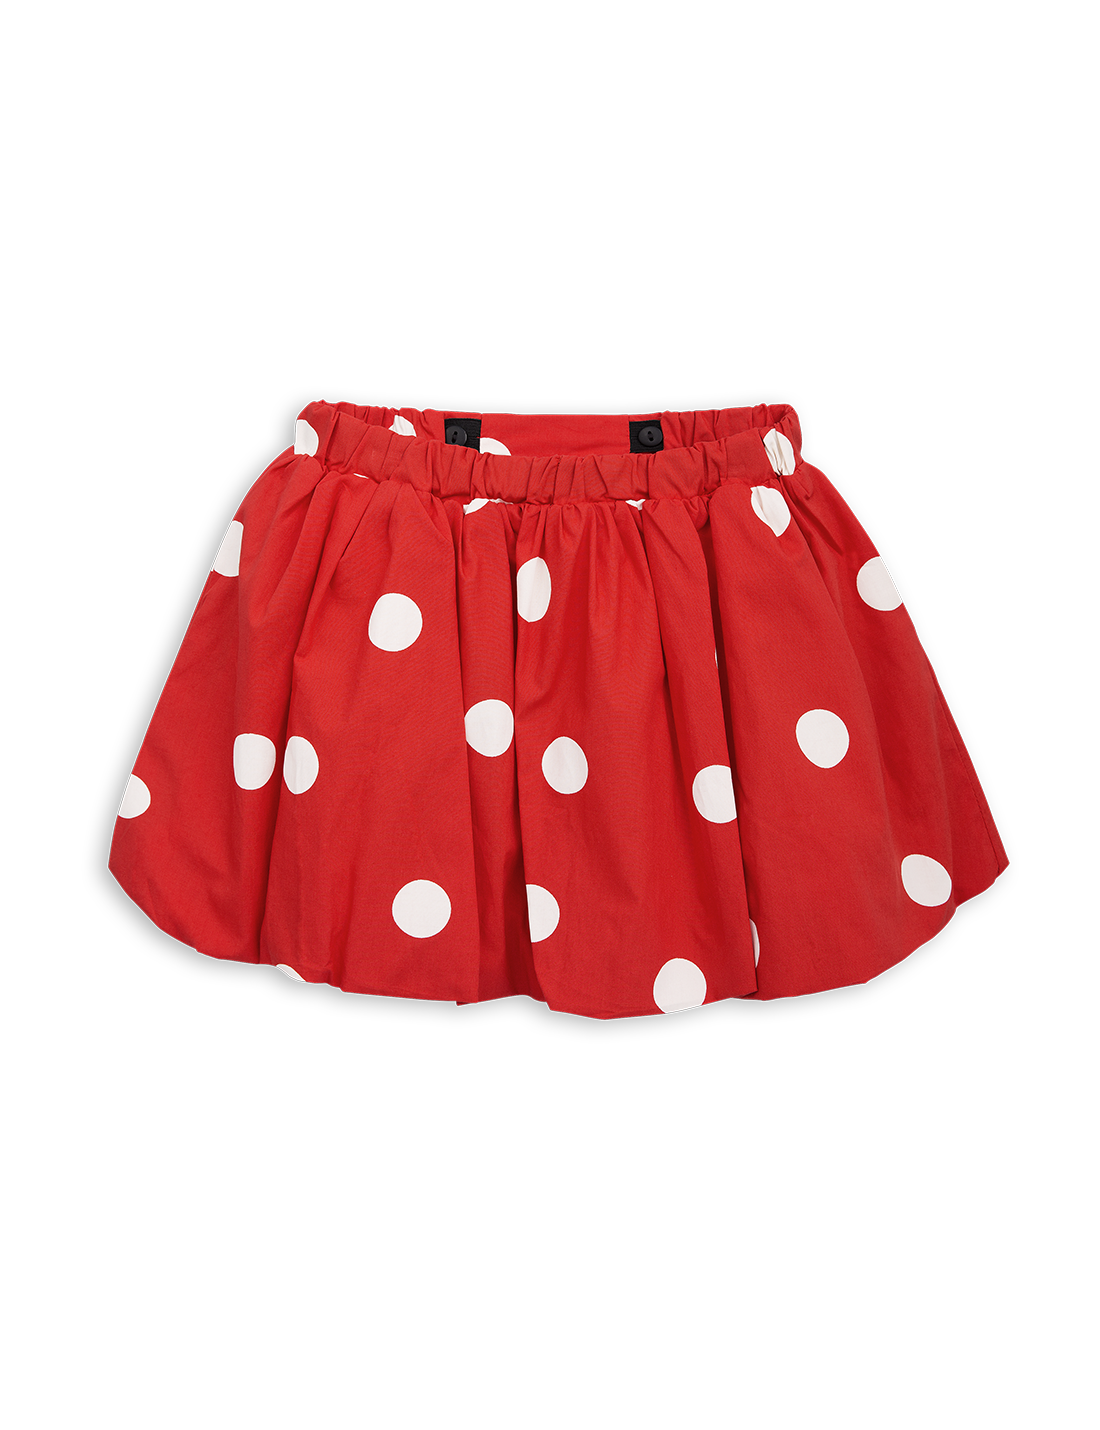 Red polka dots png. Balloon skirt in mini